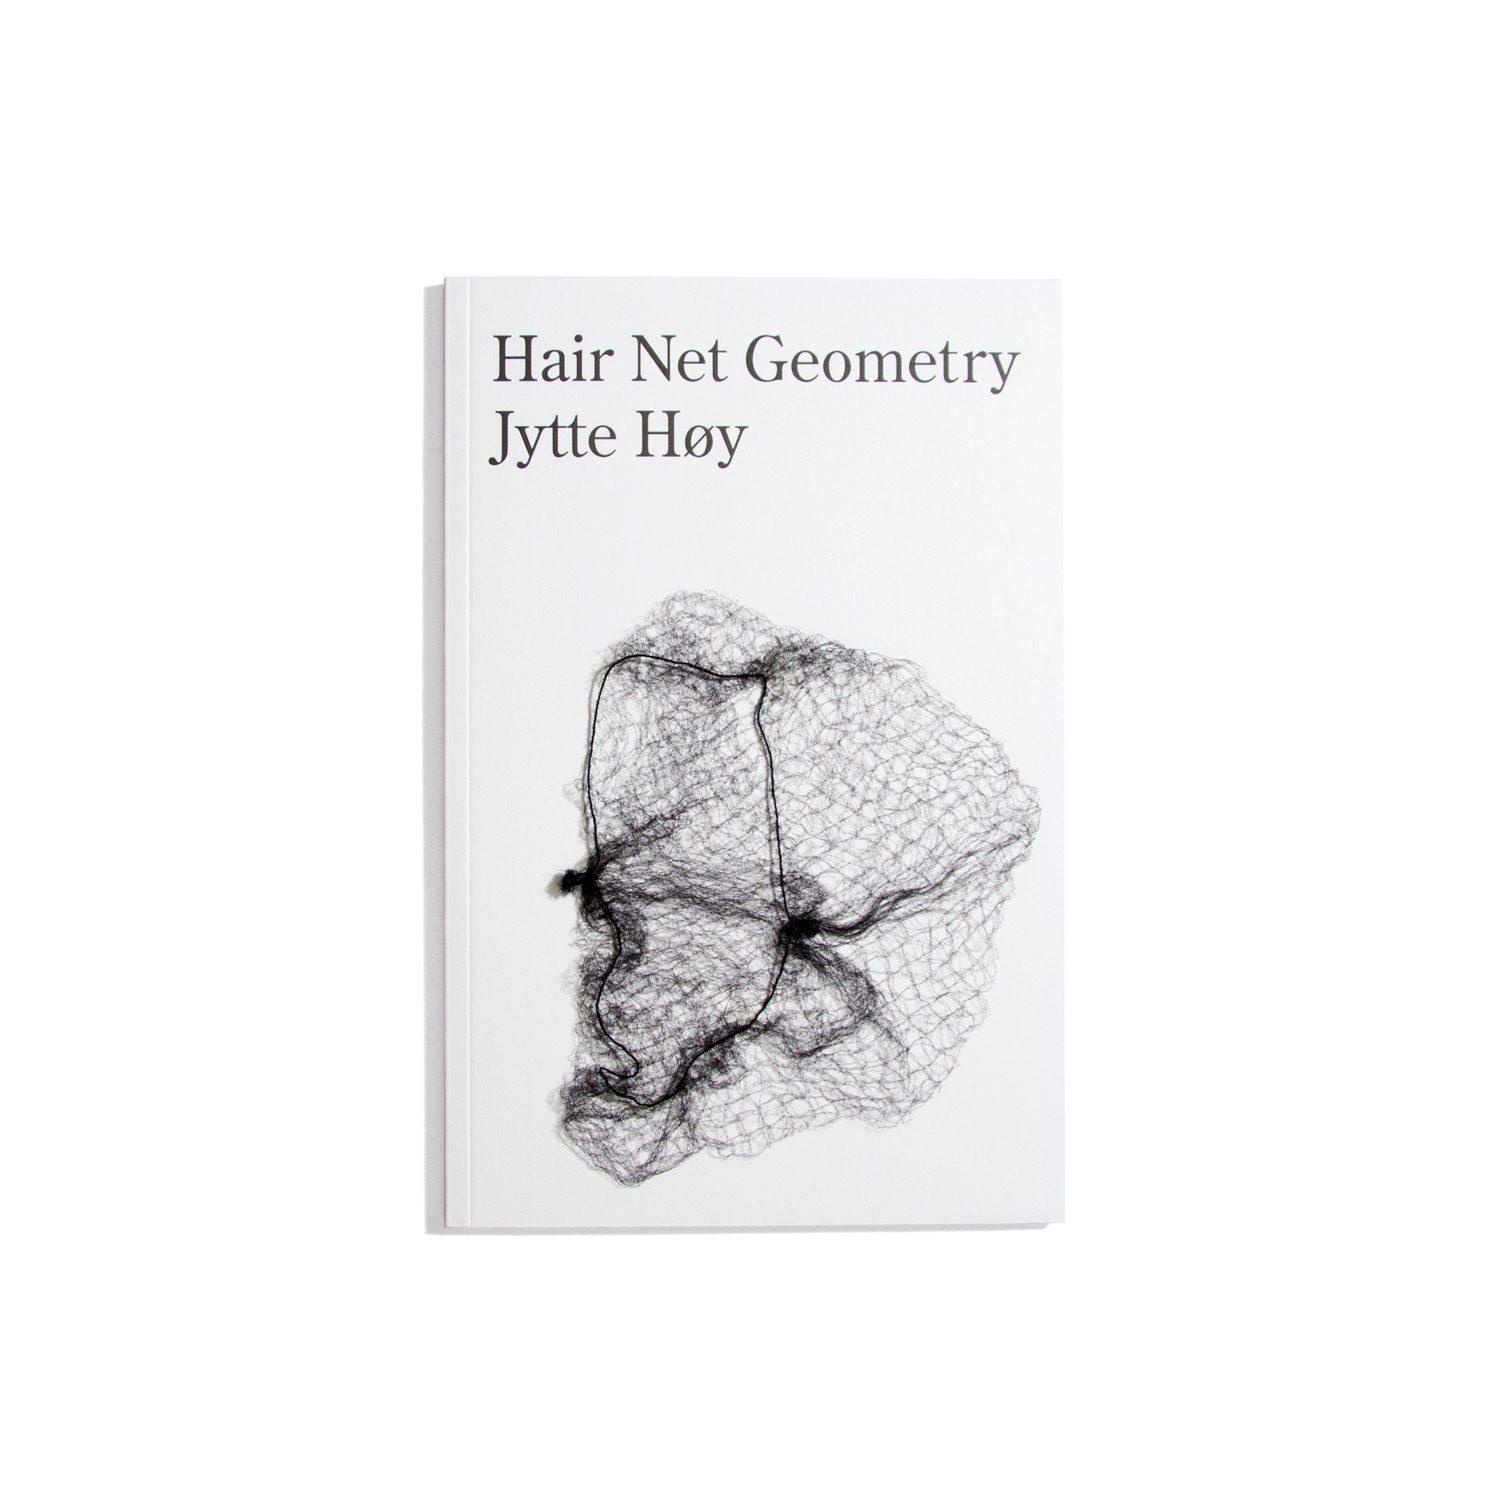 Hair Net Geometry - Jytte Høy